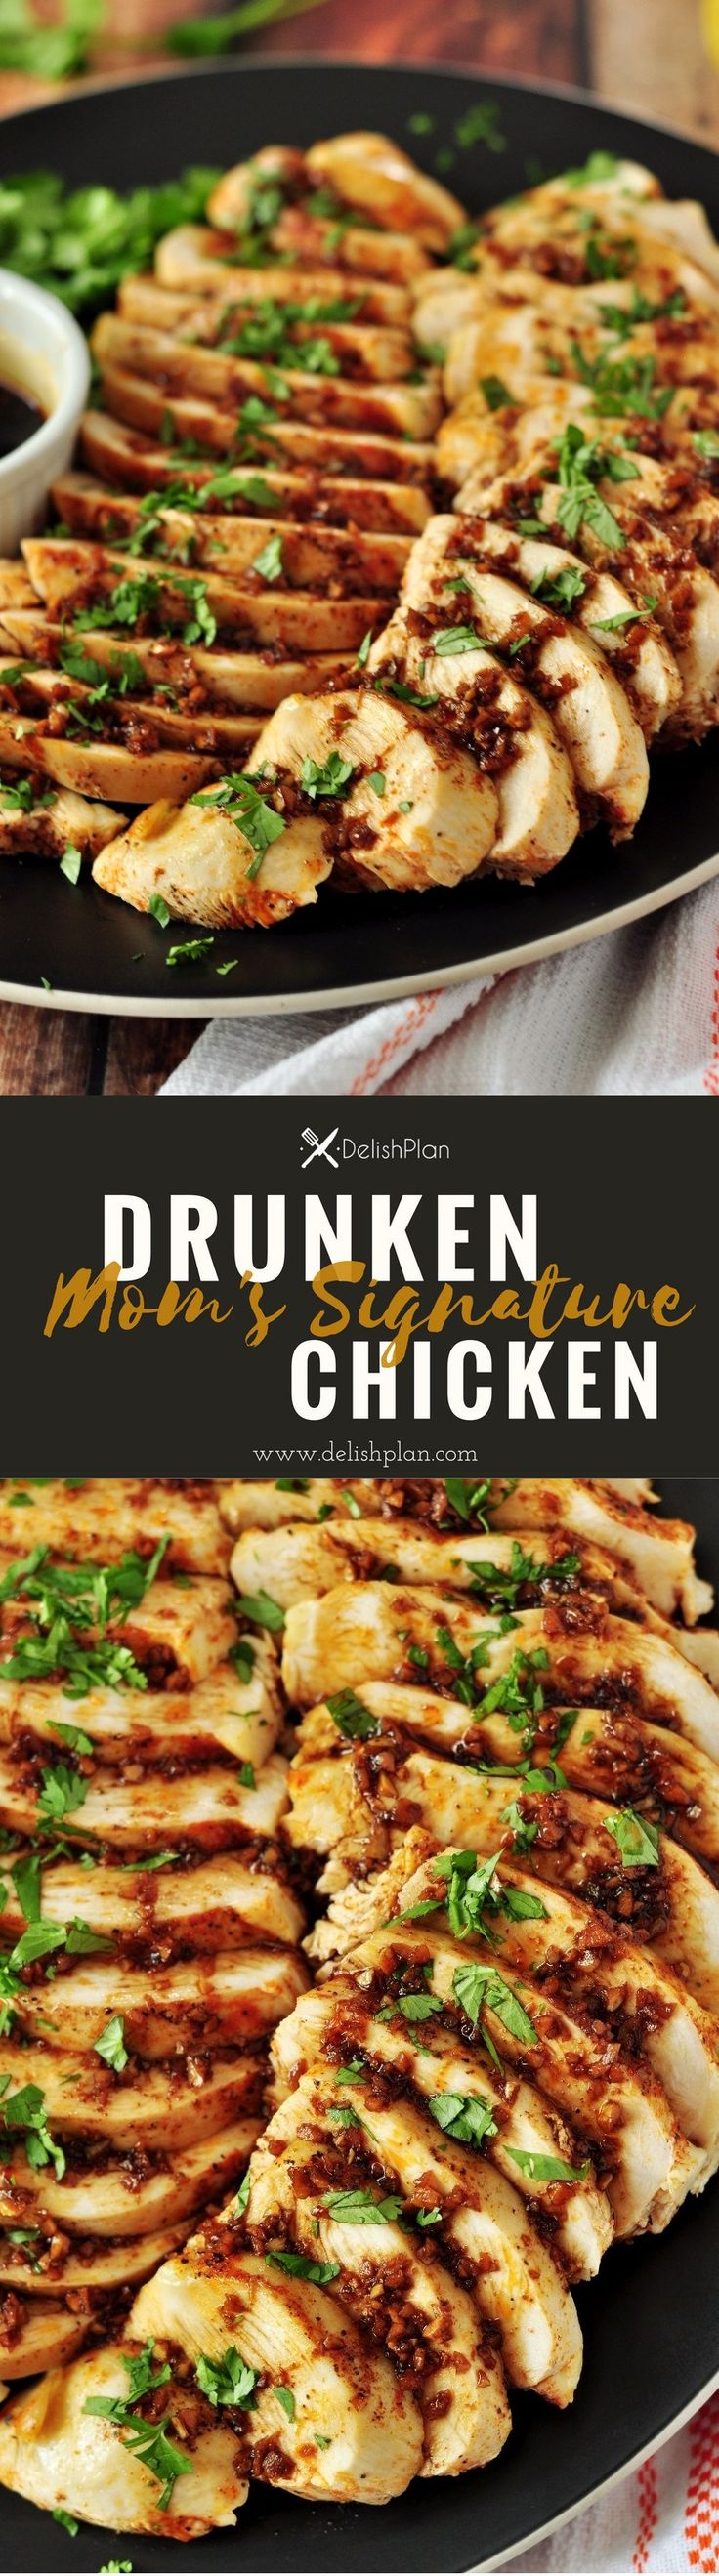 Dip your cooked chicken in this secret drunken sauce made with homemade hot chili oil, this drunken chicken will knock your socks off.